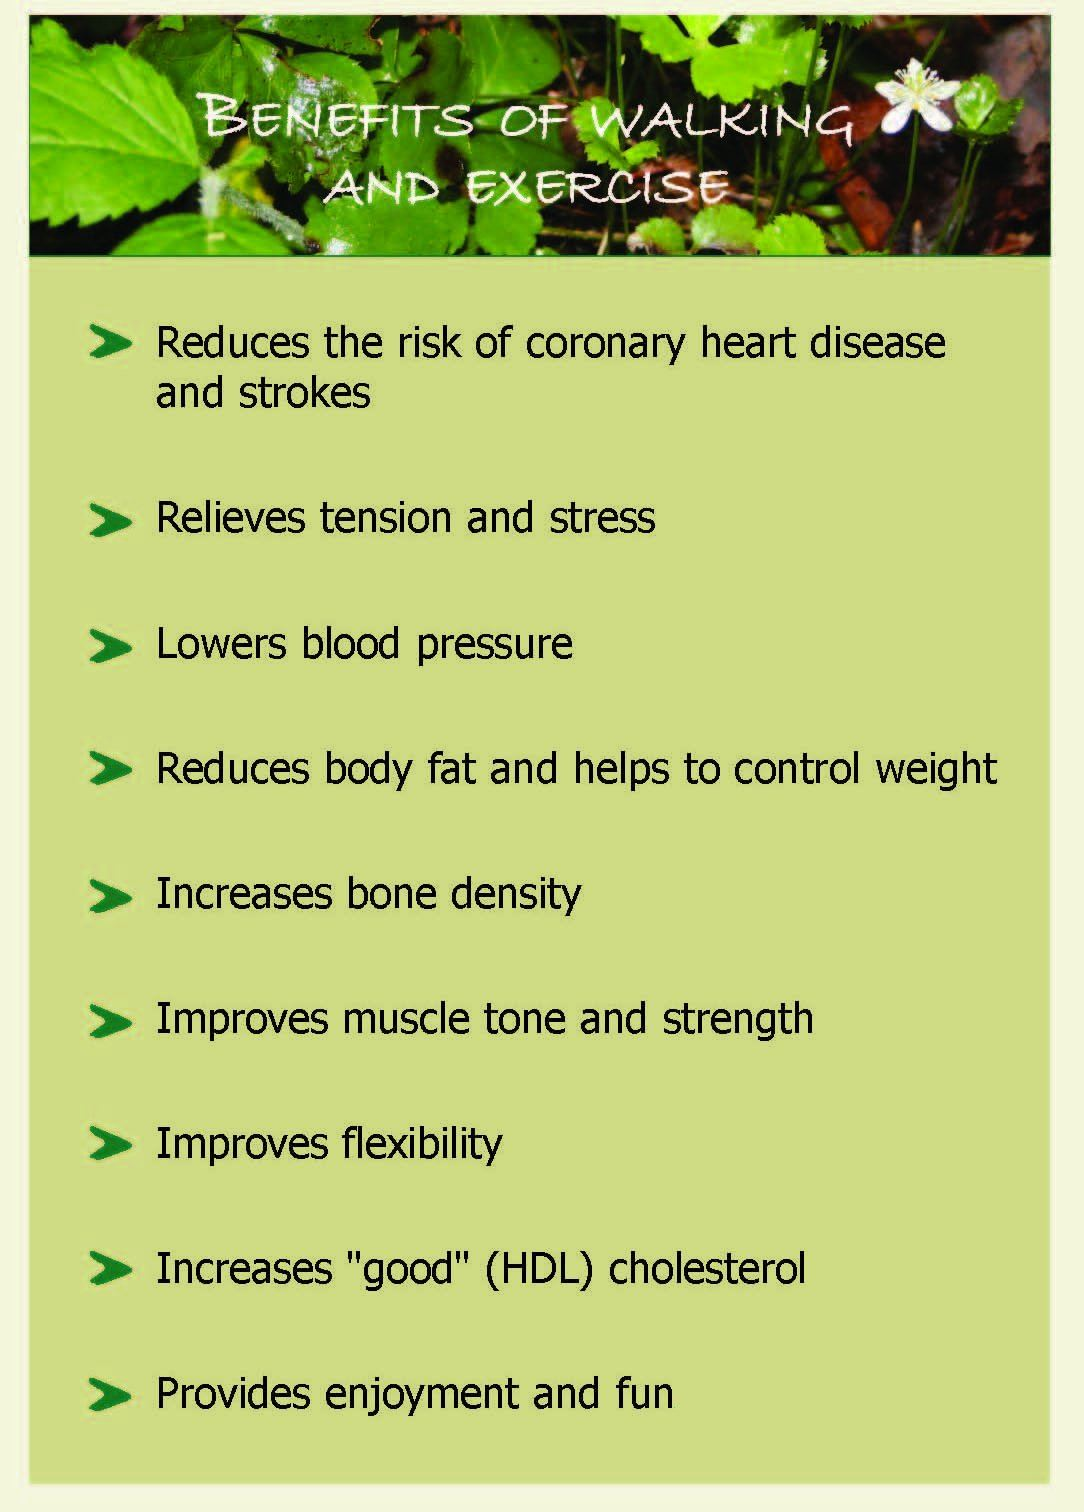 Poster with the benefits of walking and exercising